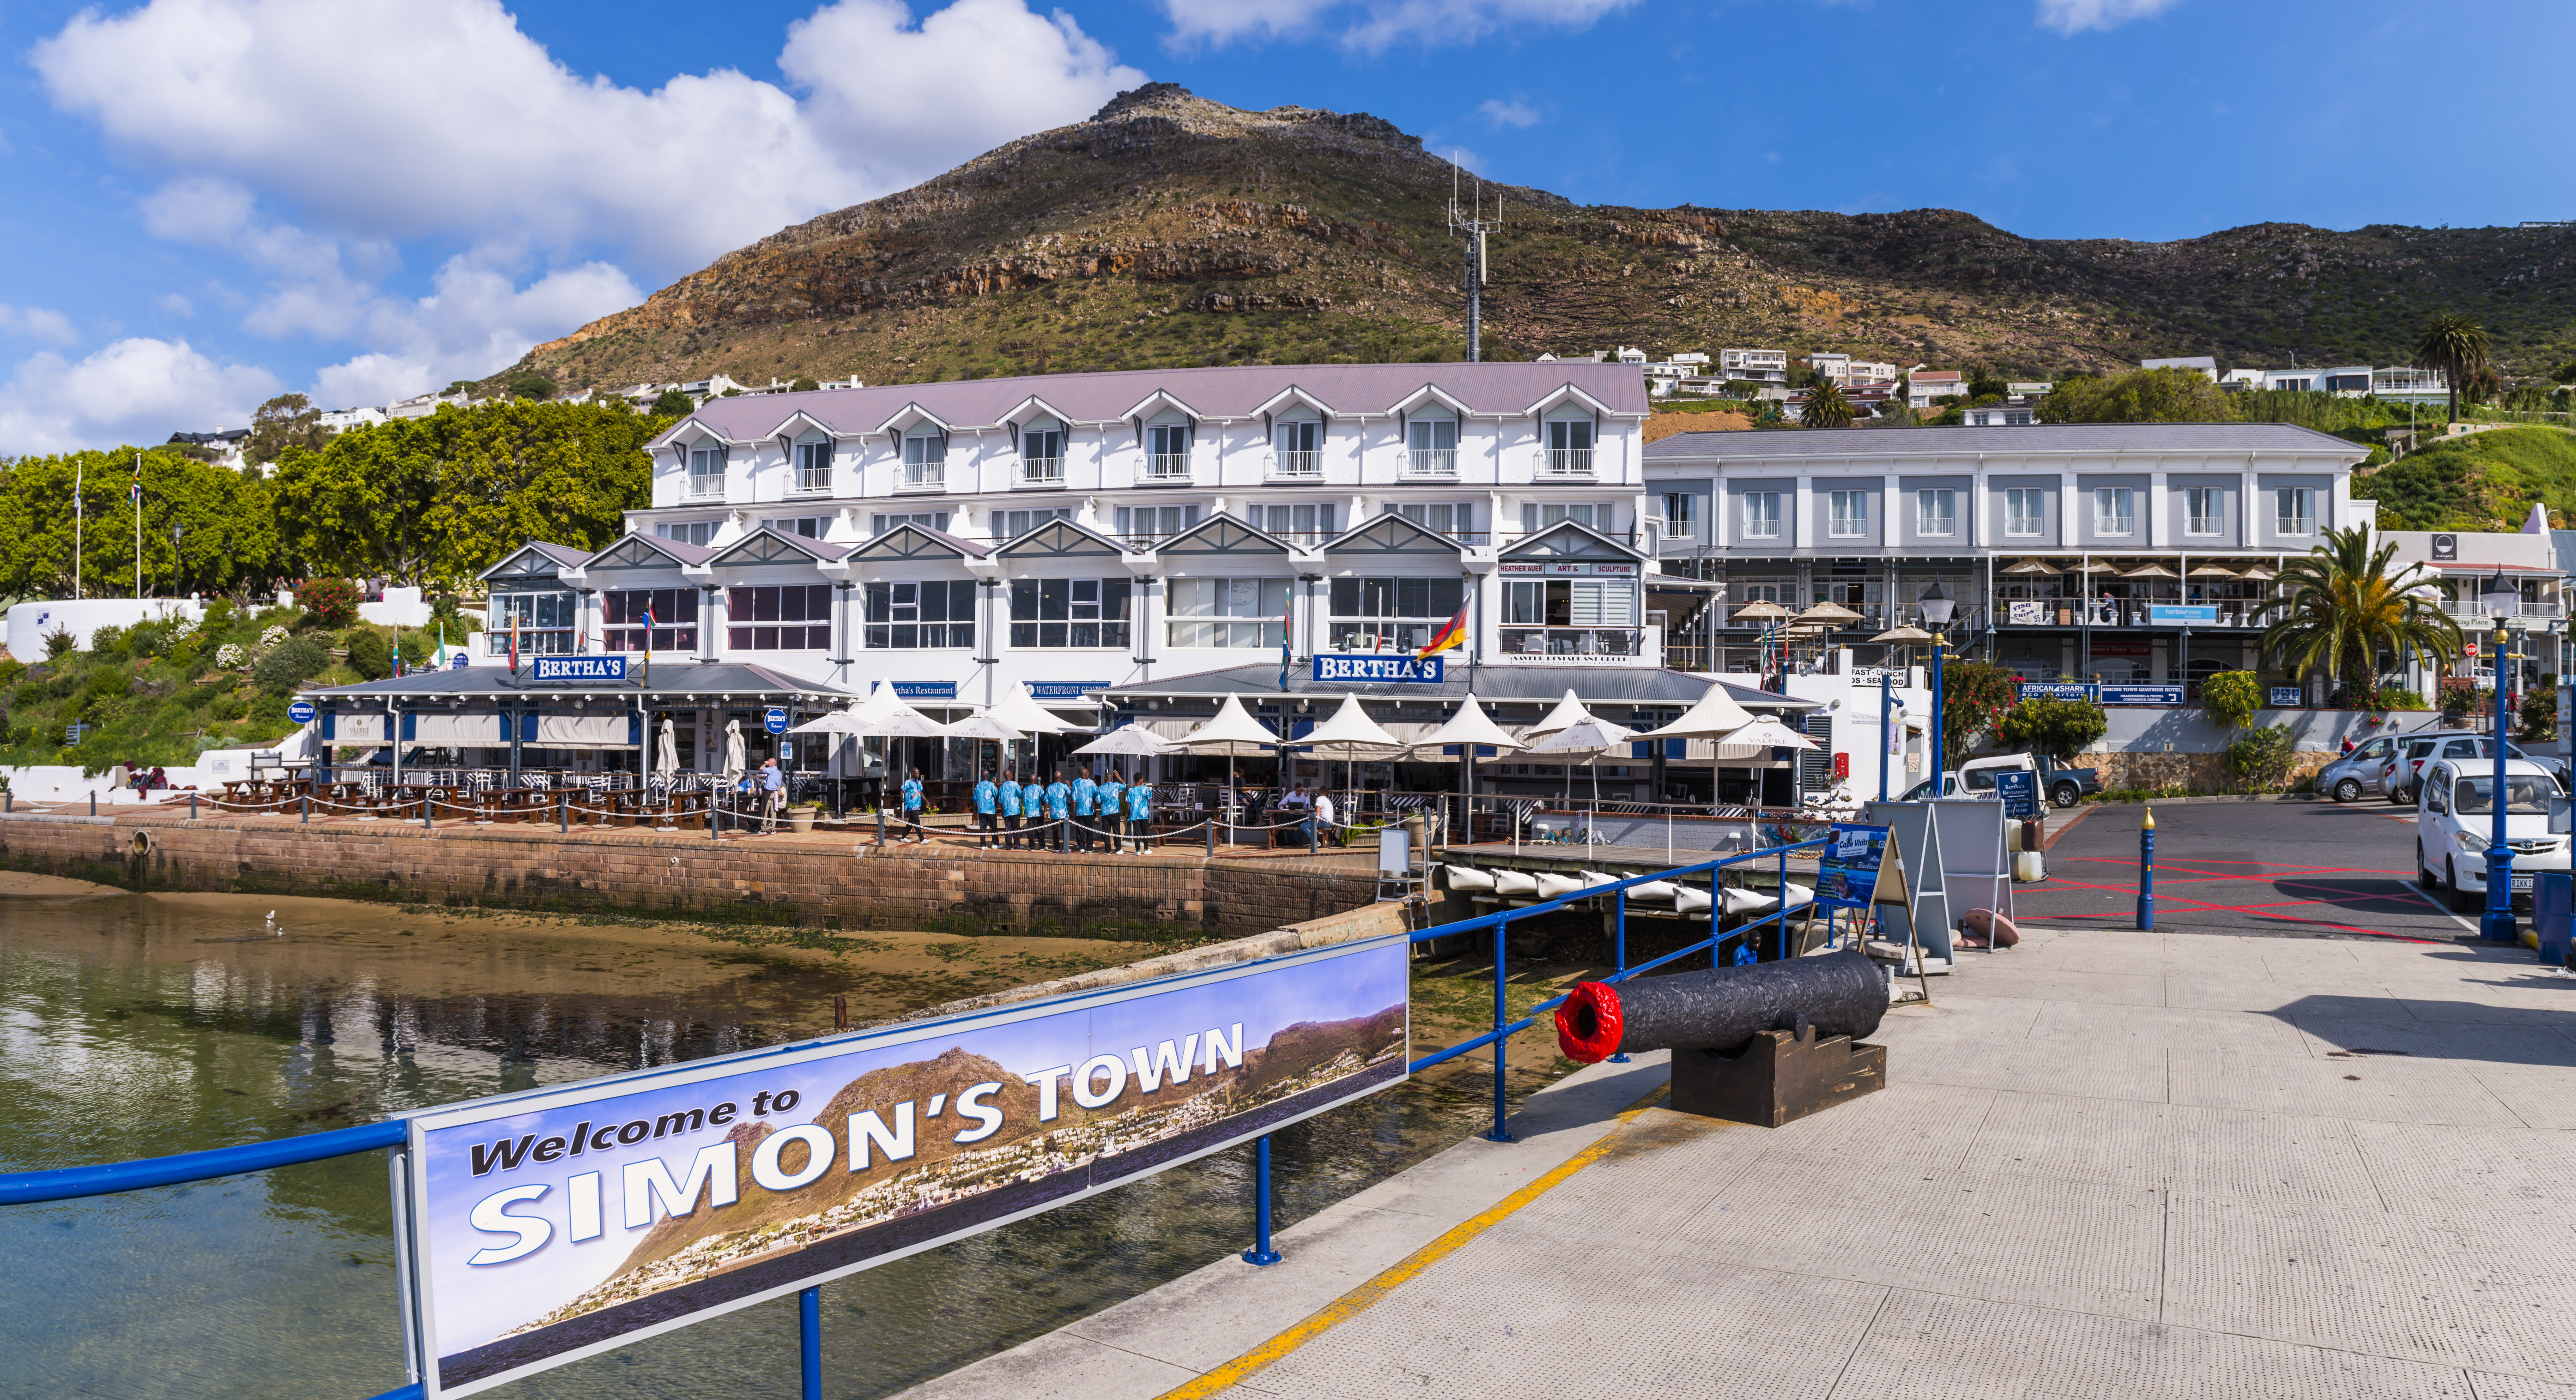 aha Simon's Town Quayside Hotel, City of Cape Town